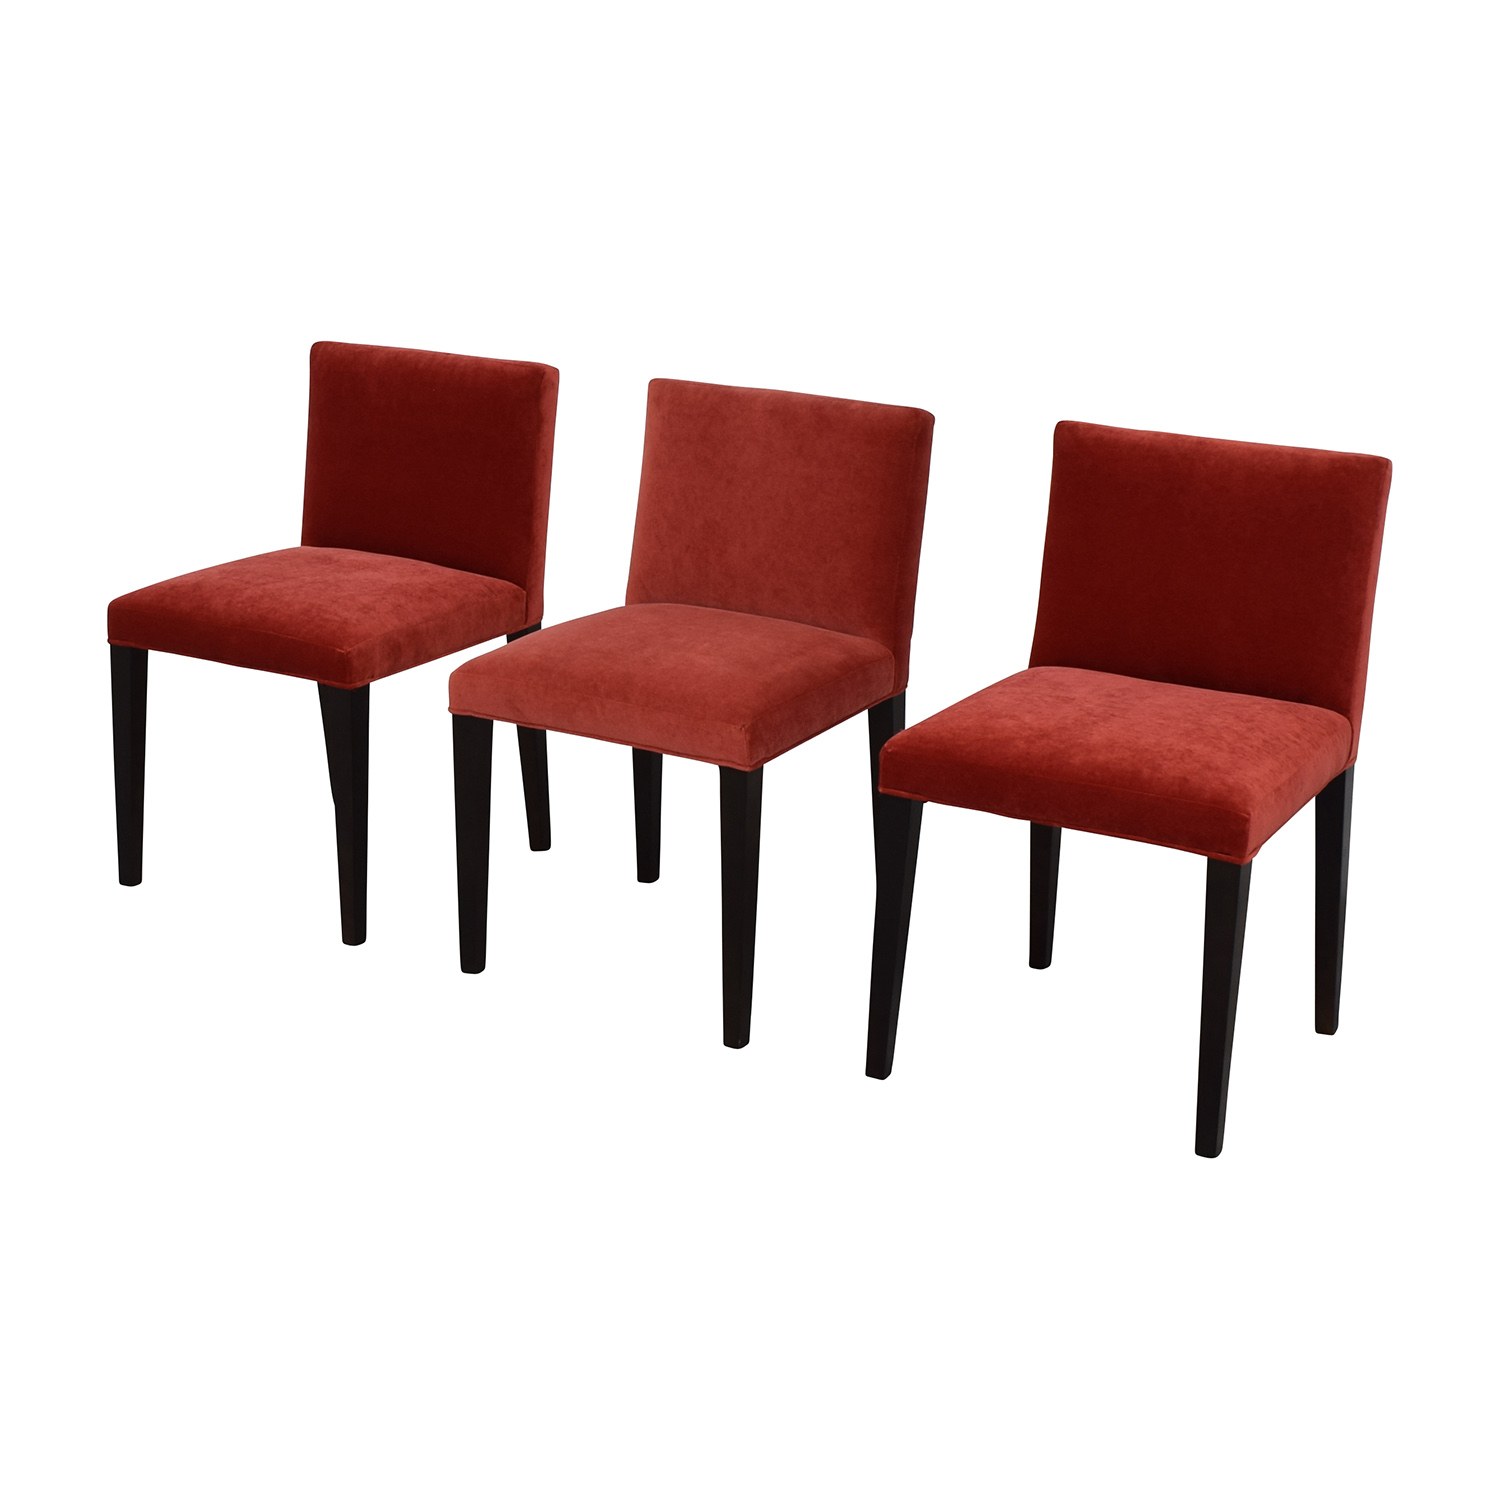 90 off oslyn red chairs chairs for Furniture 90 off